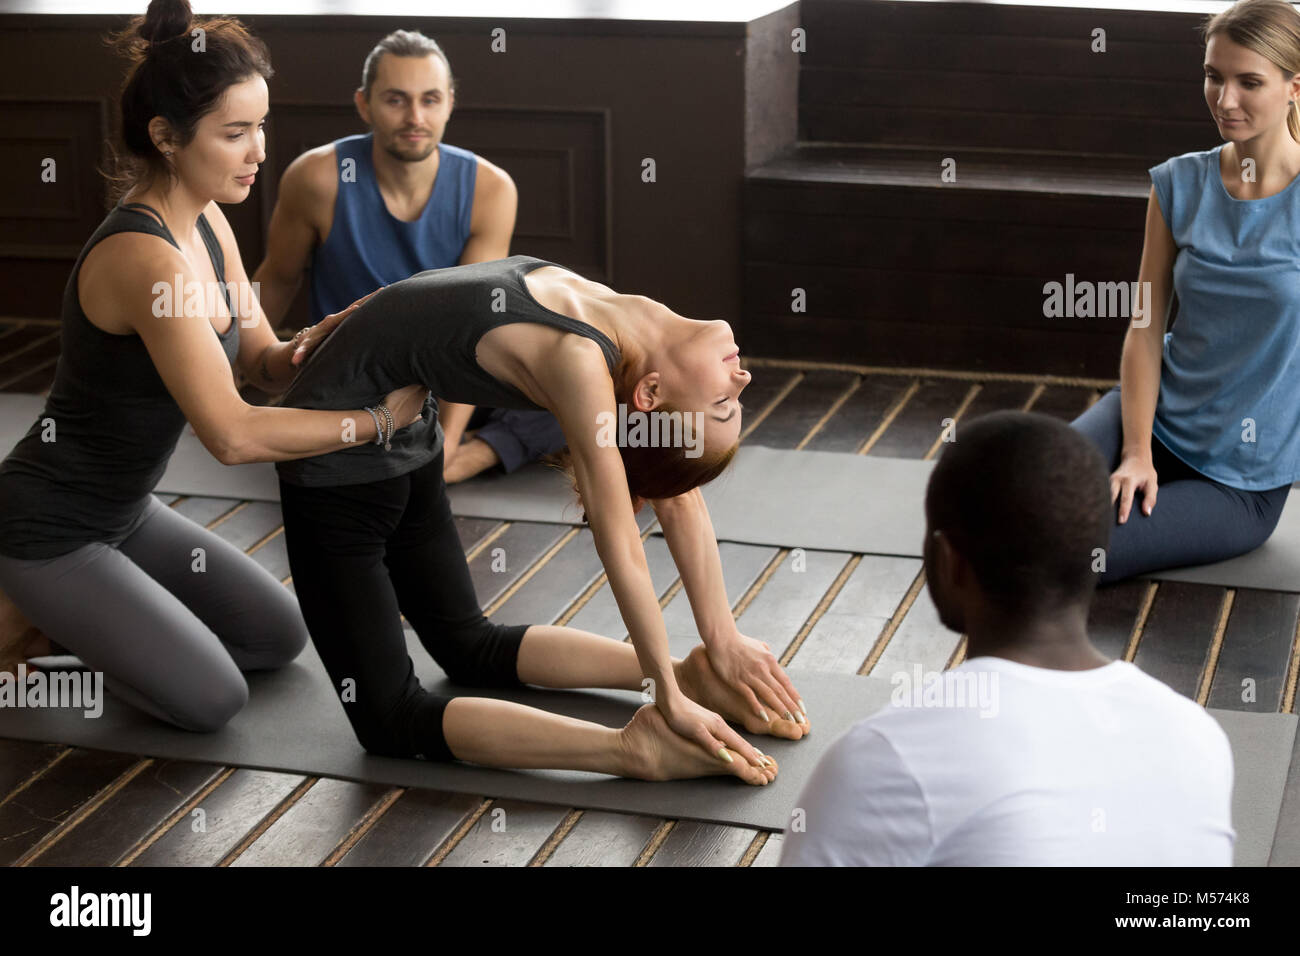 Teacher assisting woman learning new yoga pose at group training - Stock Image